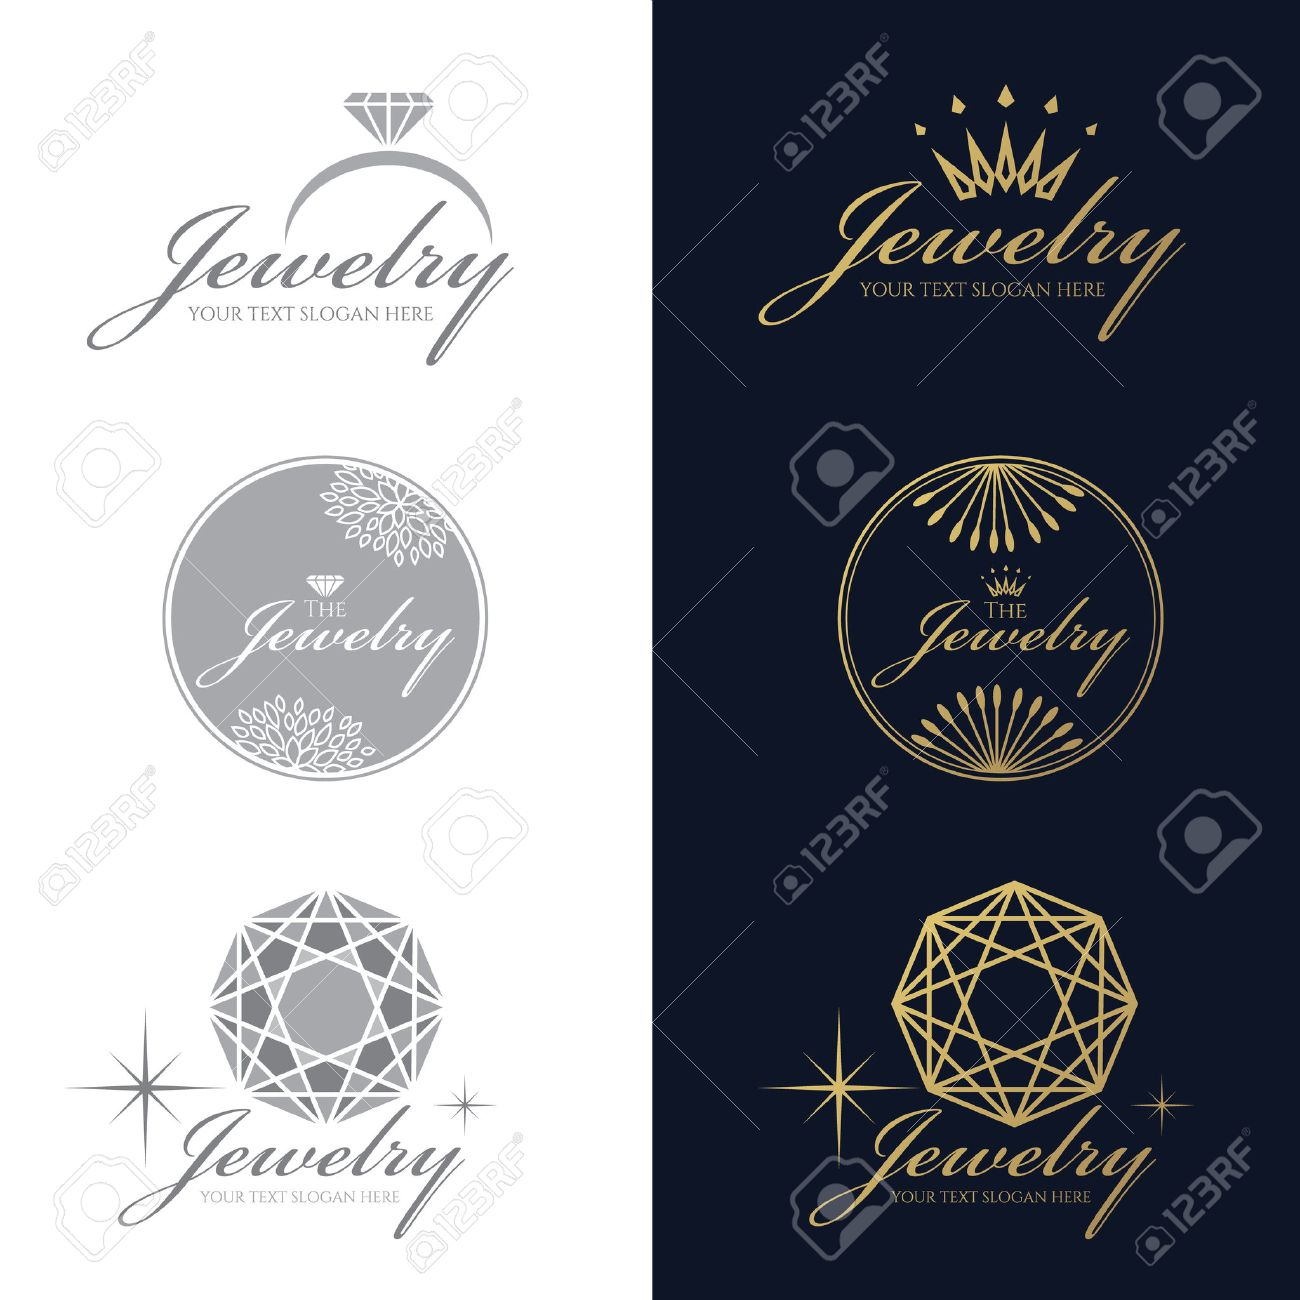 Jewelry ring logo. Jewelry crown logo. Jewelry flower and circle logo. Diamond Octagon logo. vector set and isolate on white and dark blue background - 55658520